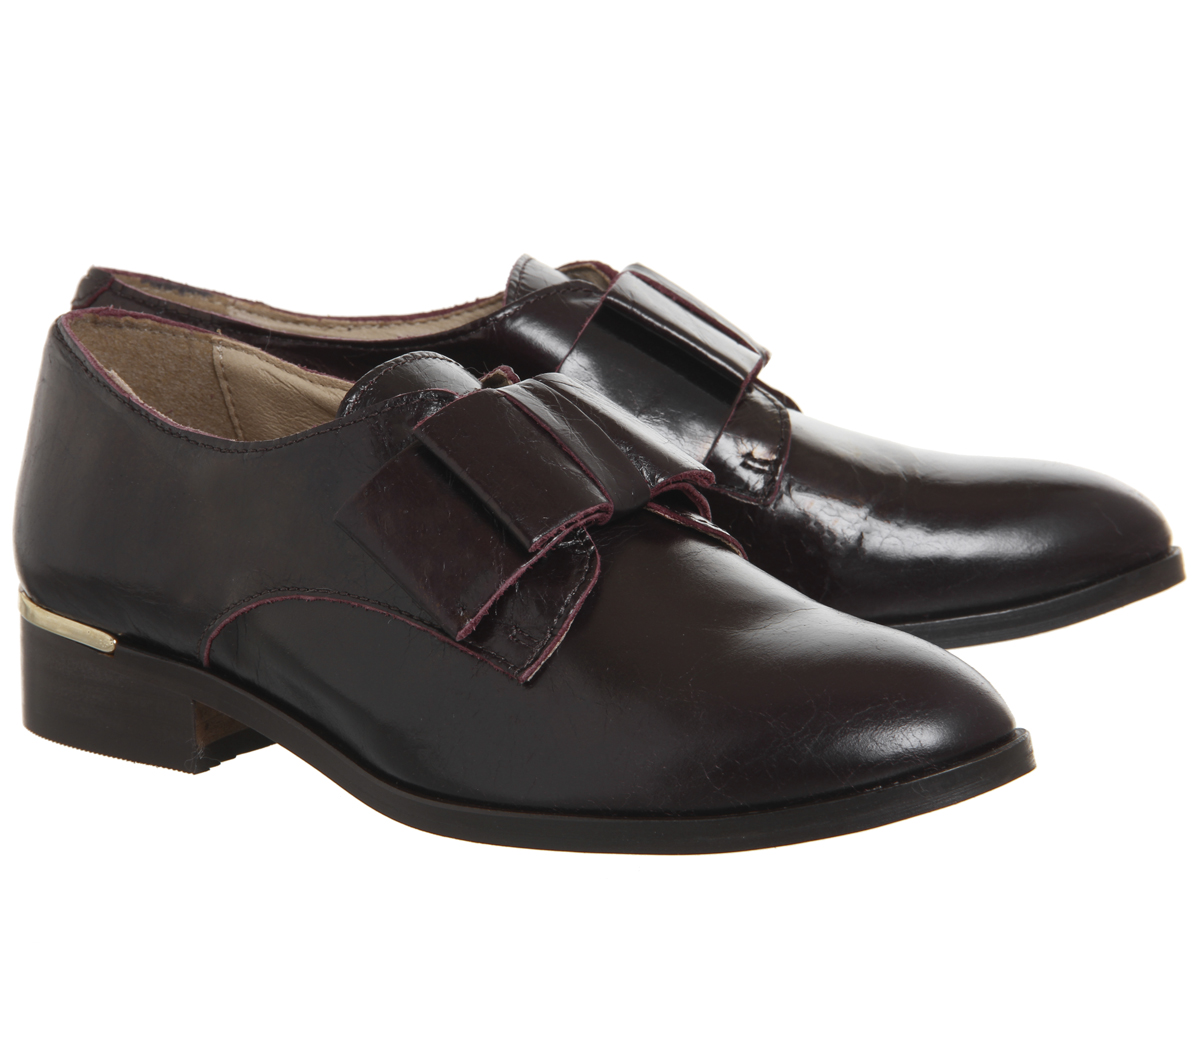 Womens Office Flexa Slip On With Bow Bow Bow Flats Burgundy Groucho Leather With Heel Cl 4ea399